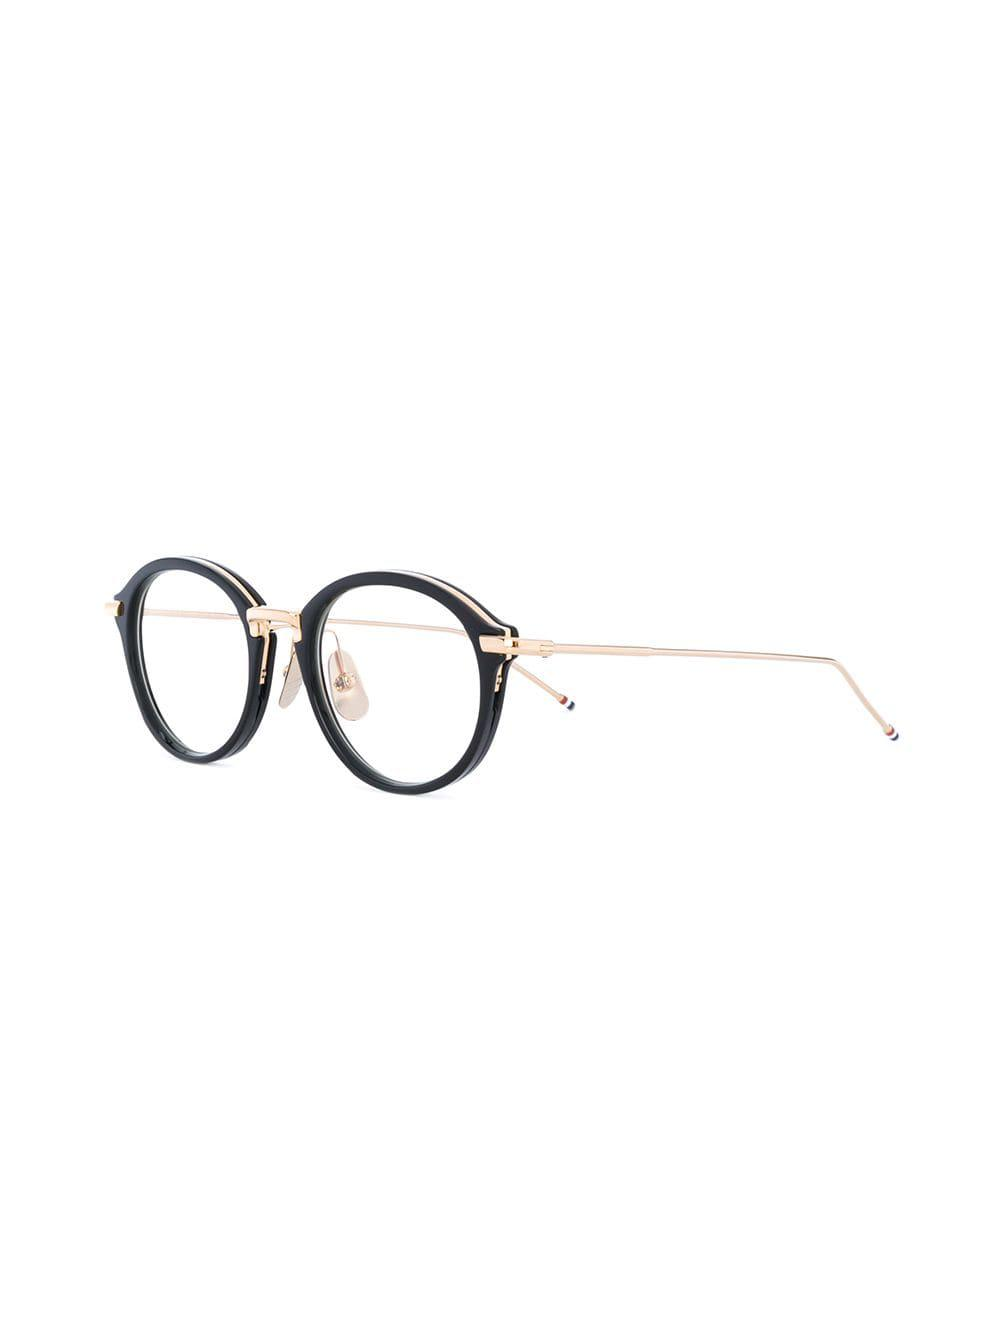 74dfc2d71b Thom Browne Black   Shiny 18k Gold Optical Glasses in Black - Save  32.041049030786766% - Lyst